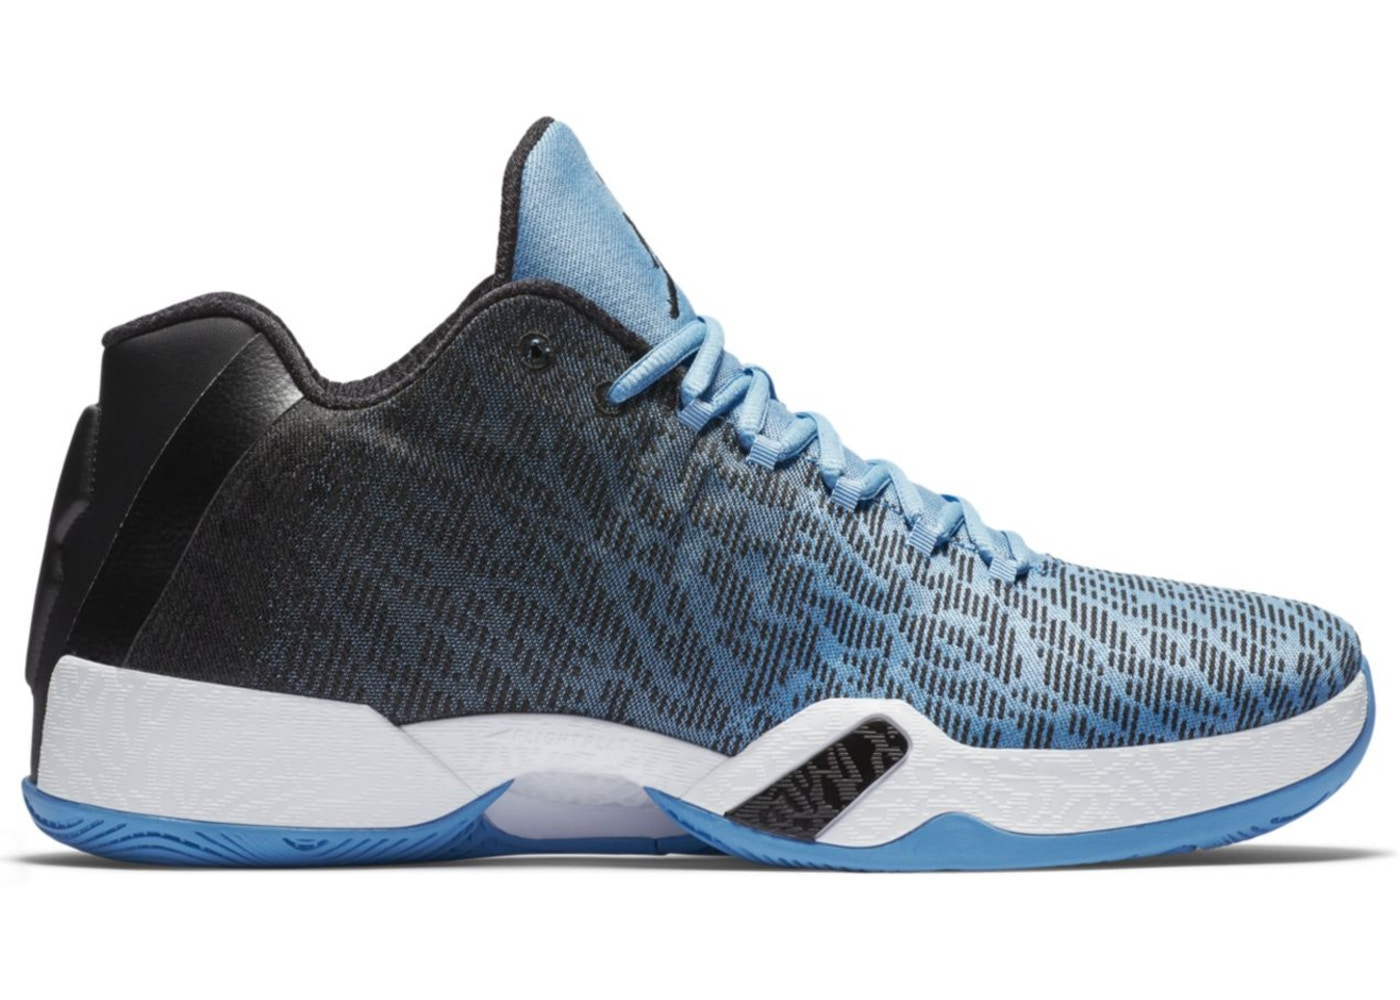 outlet store e727a 8a88f Buy Air Jordan 29 Shoes   Deadstock Sneakers